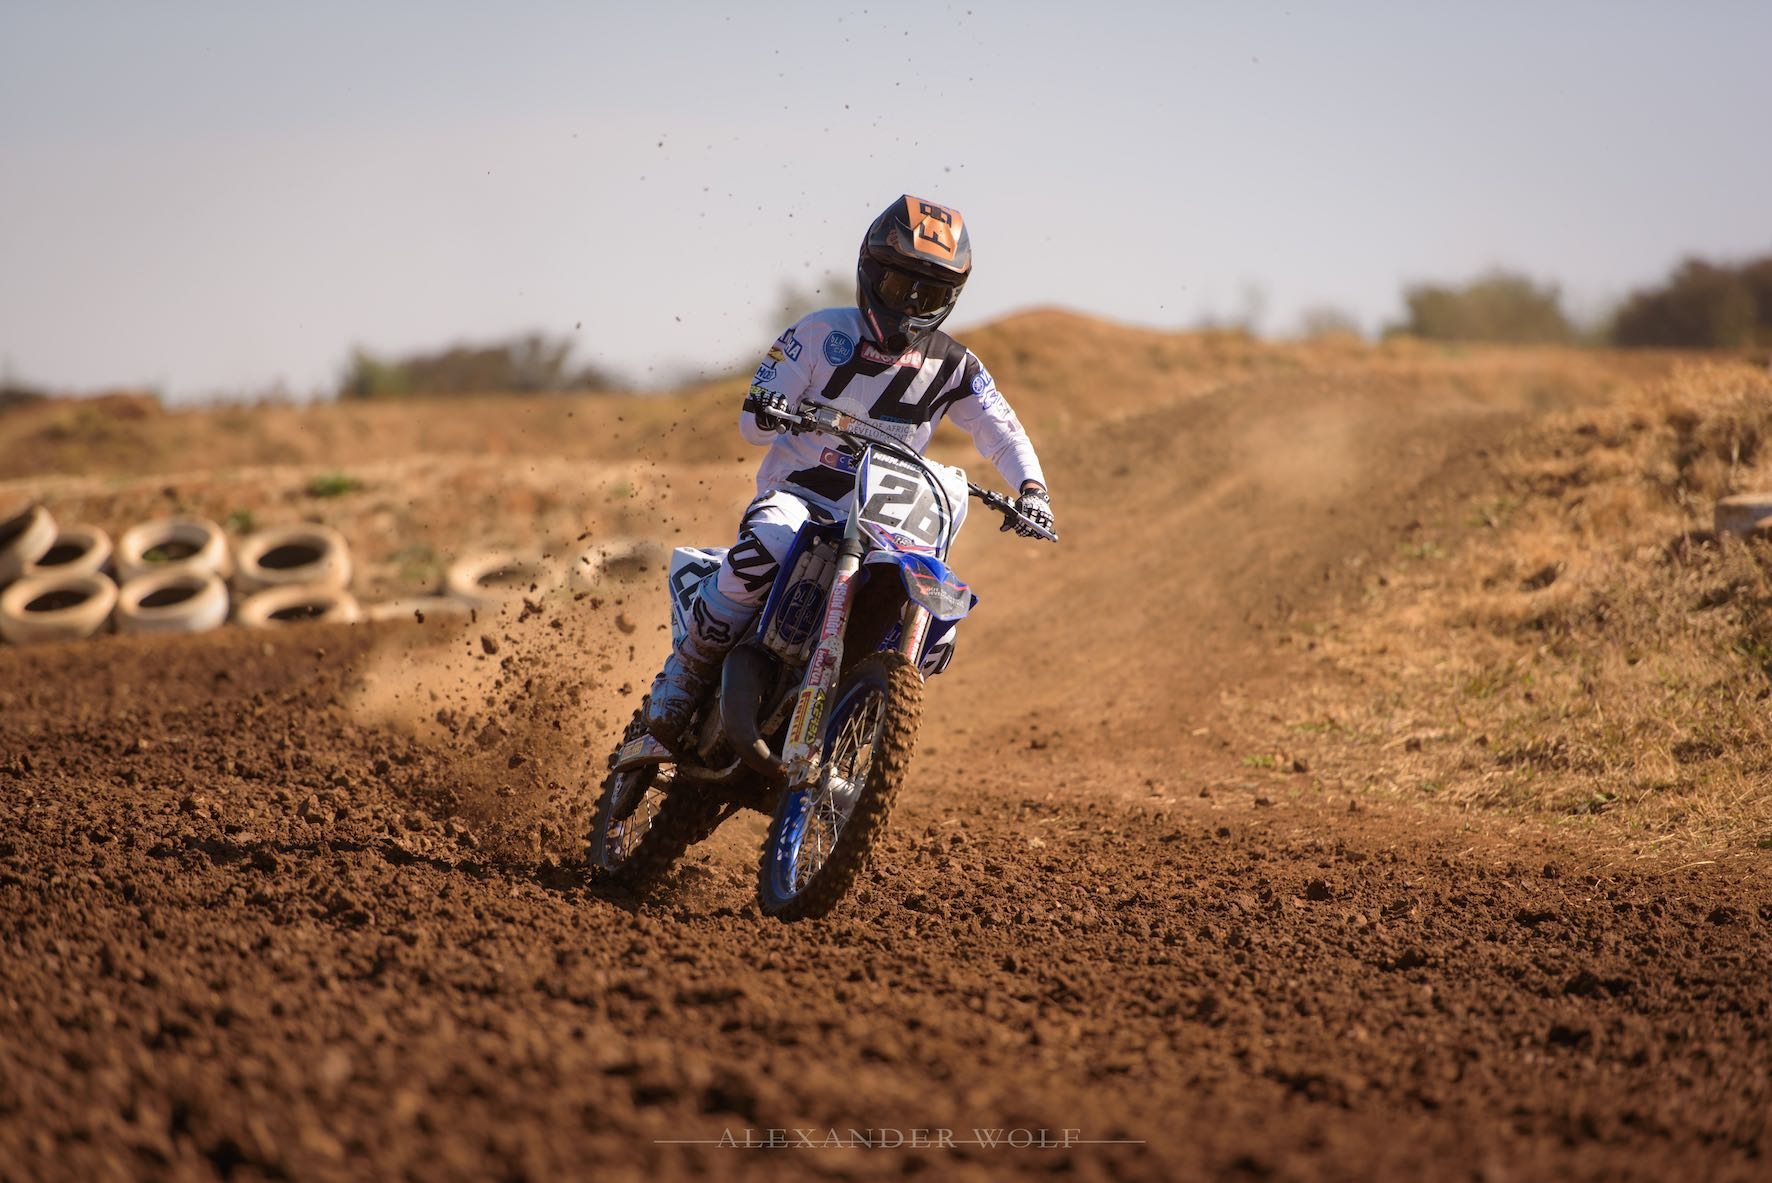 We talk motocross with Miguel de Waal